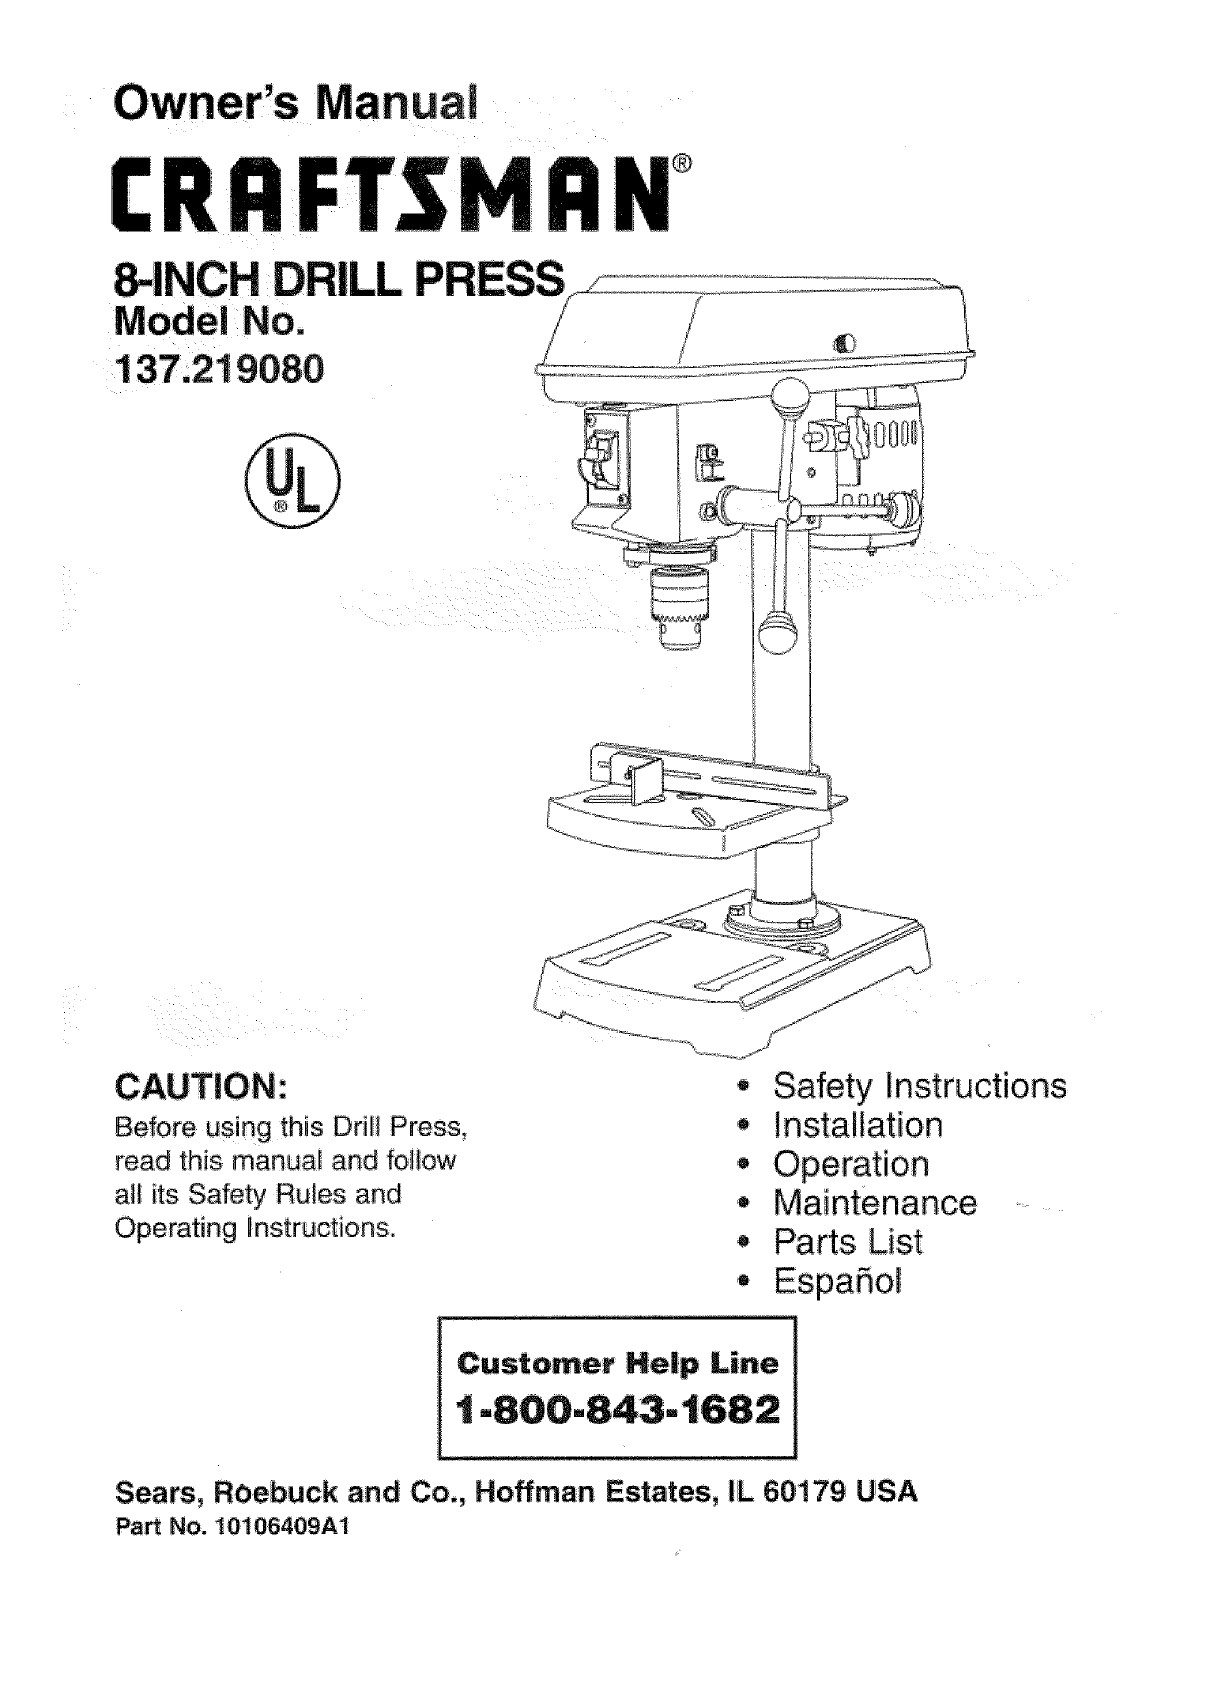 Drill Press Parts Diagram Craftsman User Manual 8 Drill Press Manuals and Guides